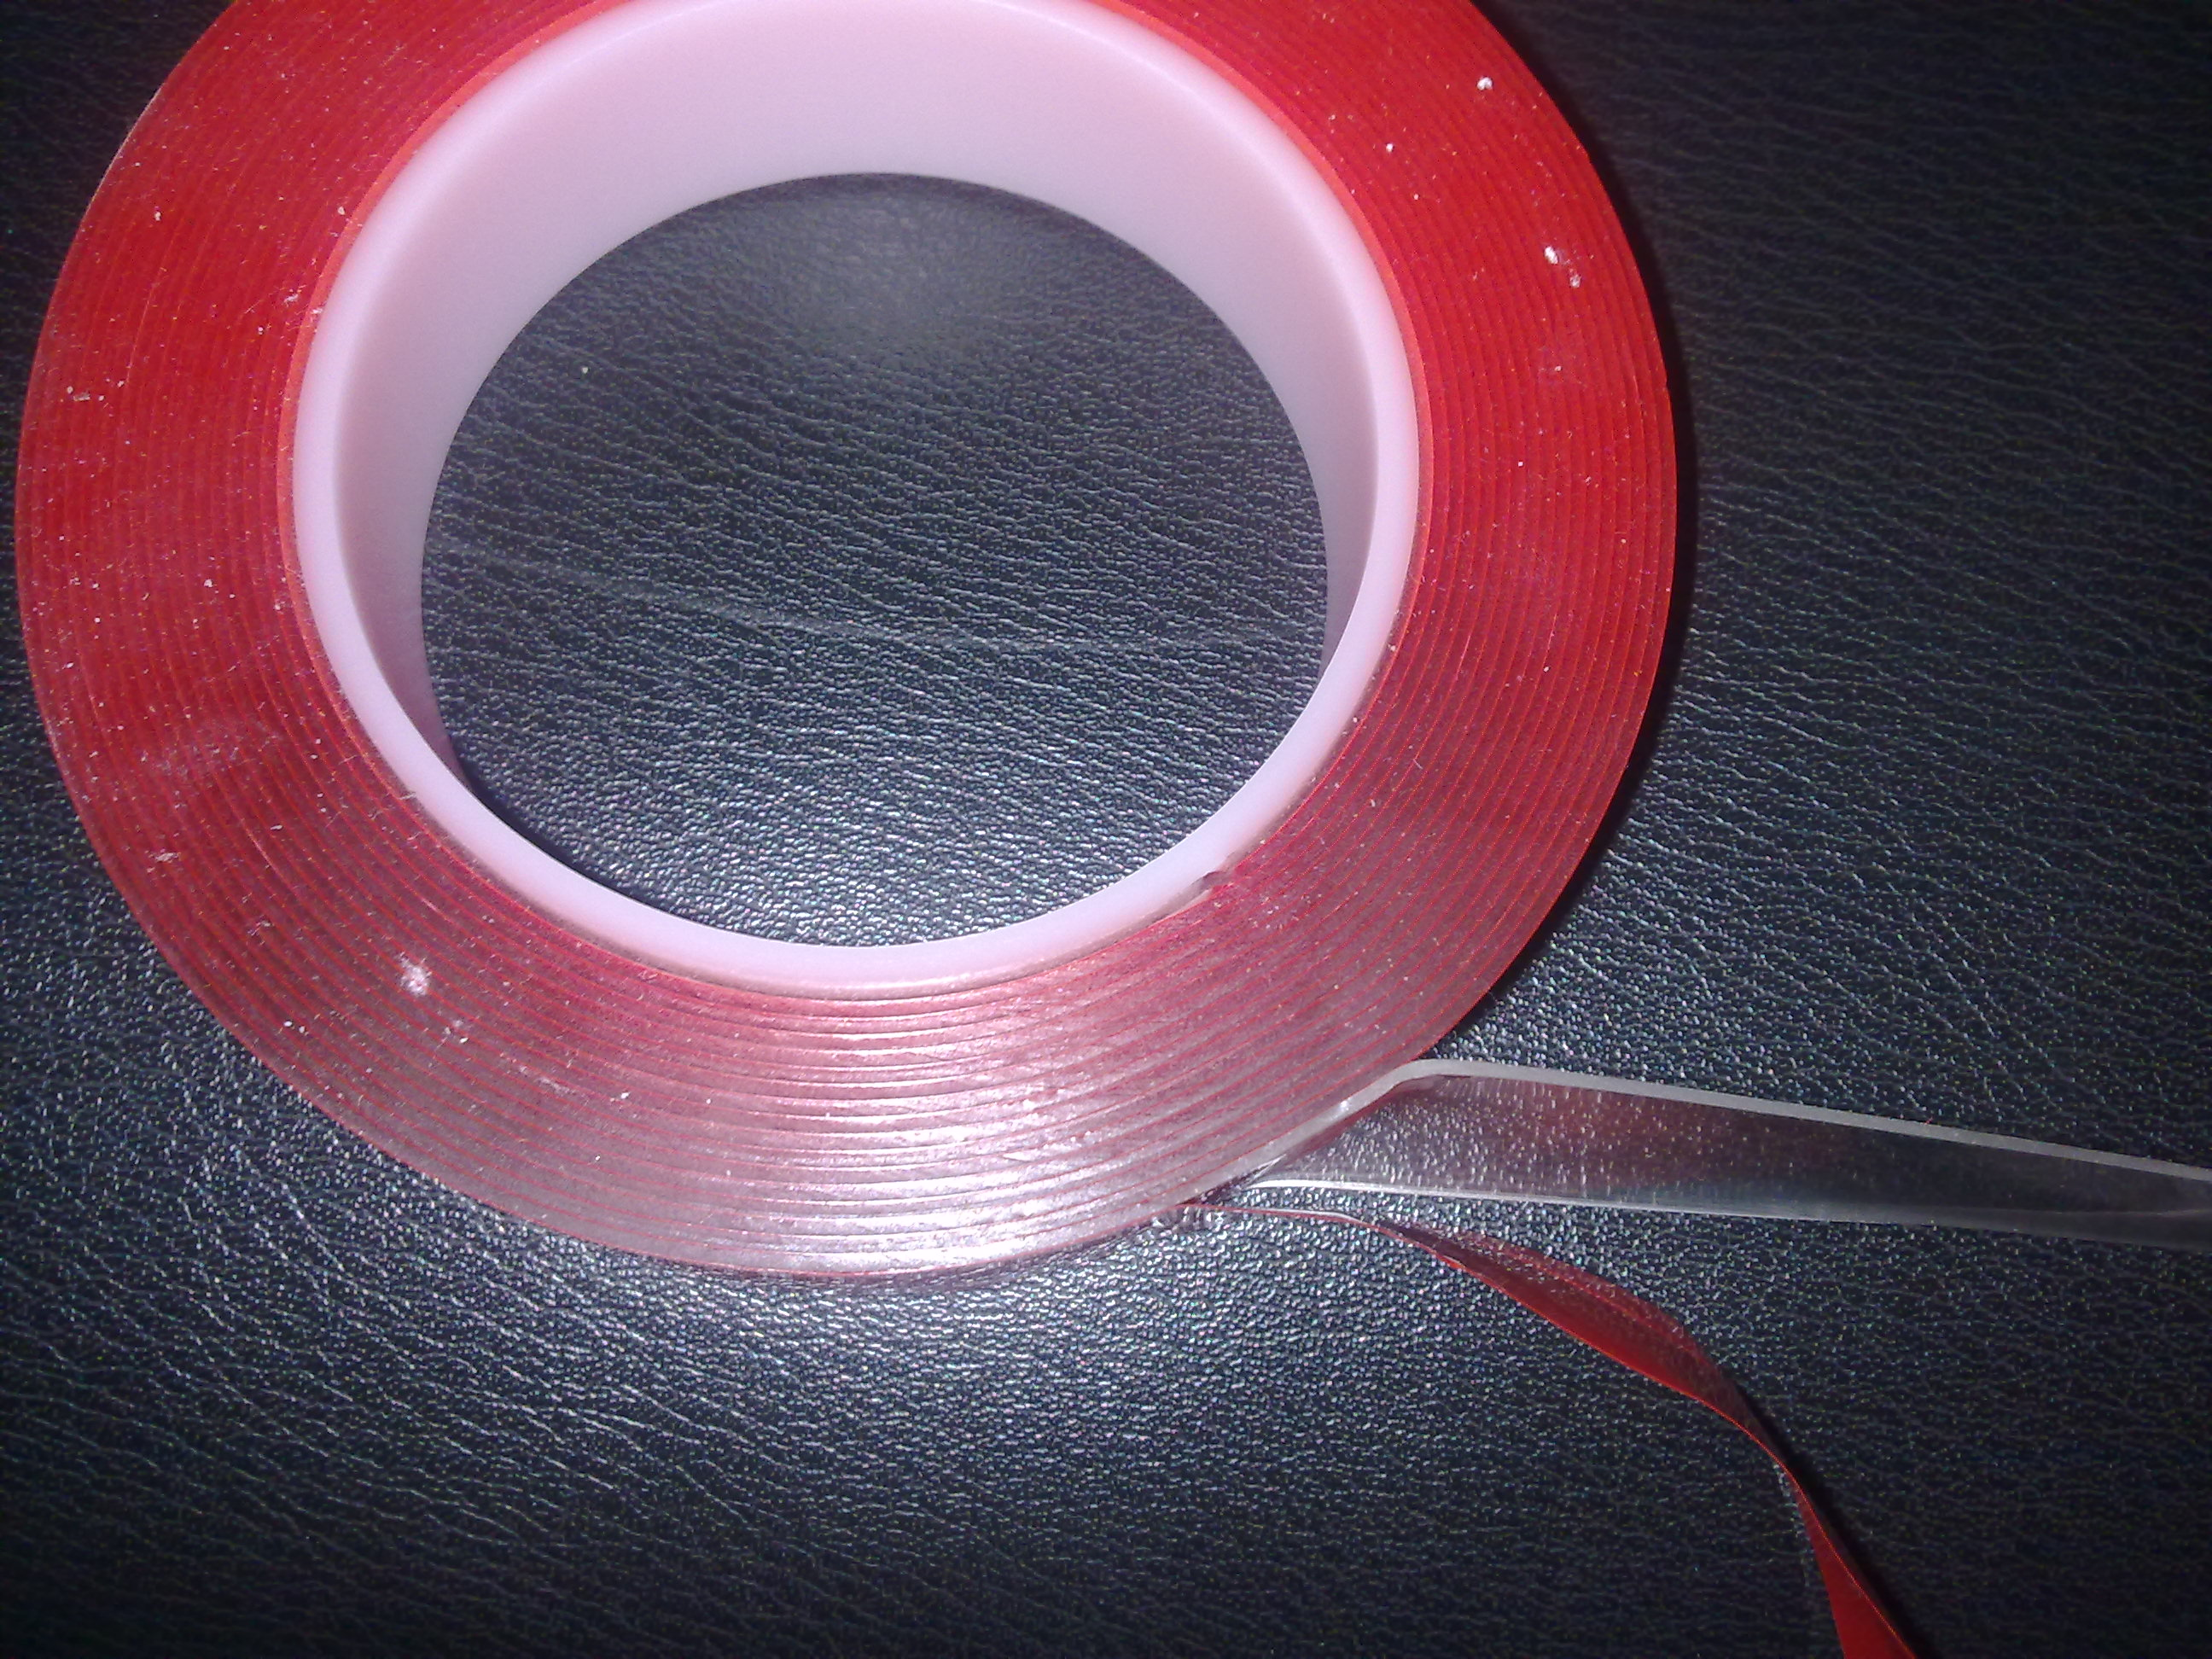 Large supply of foam tape